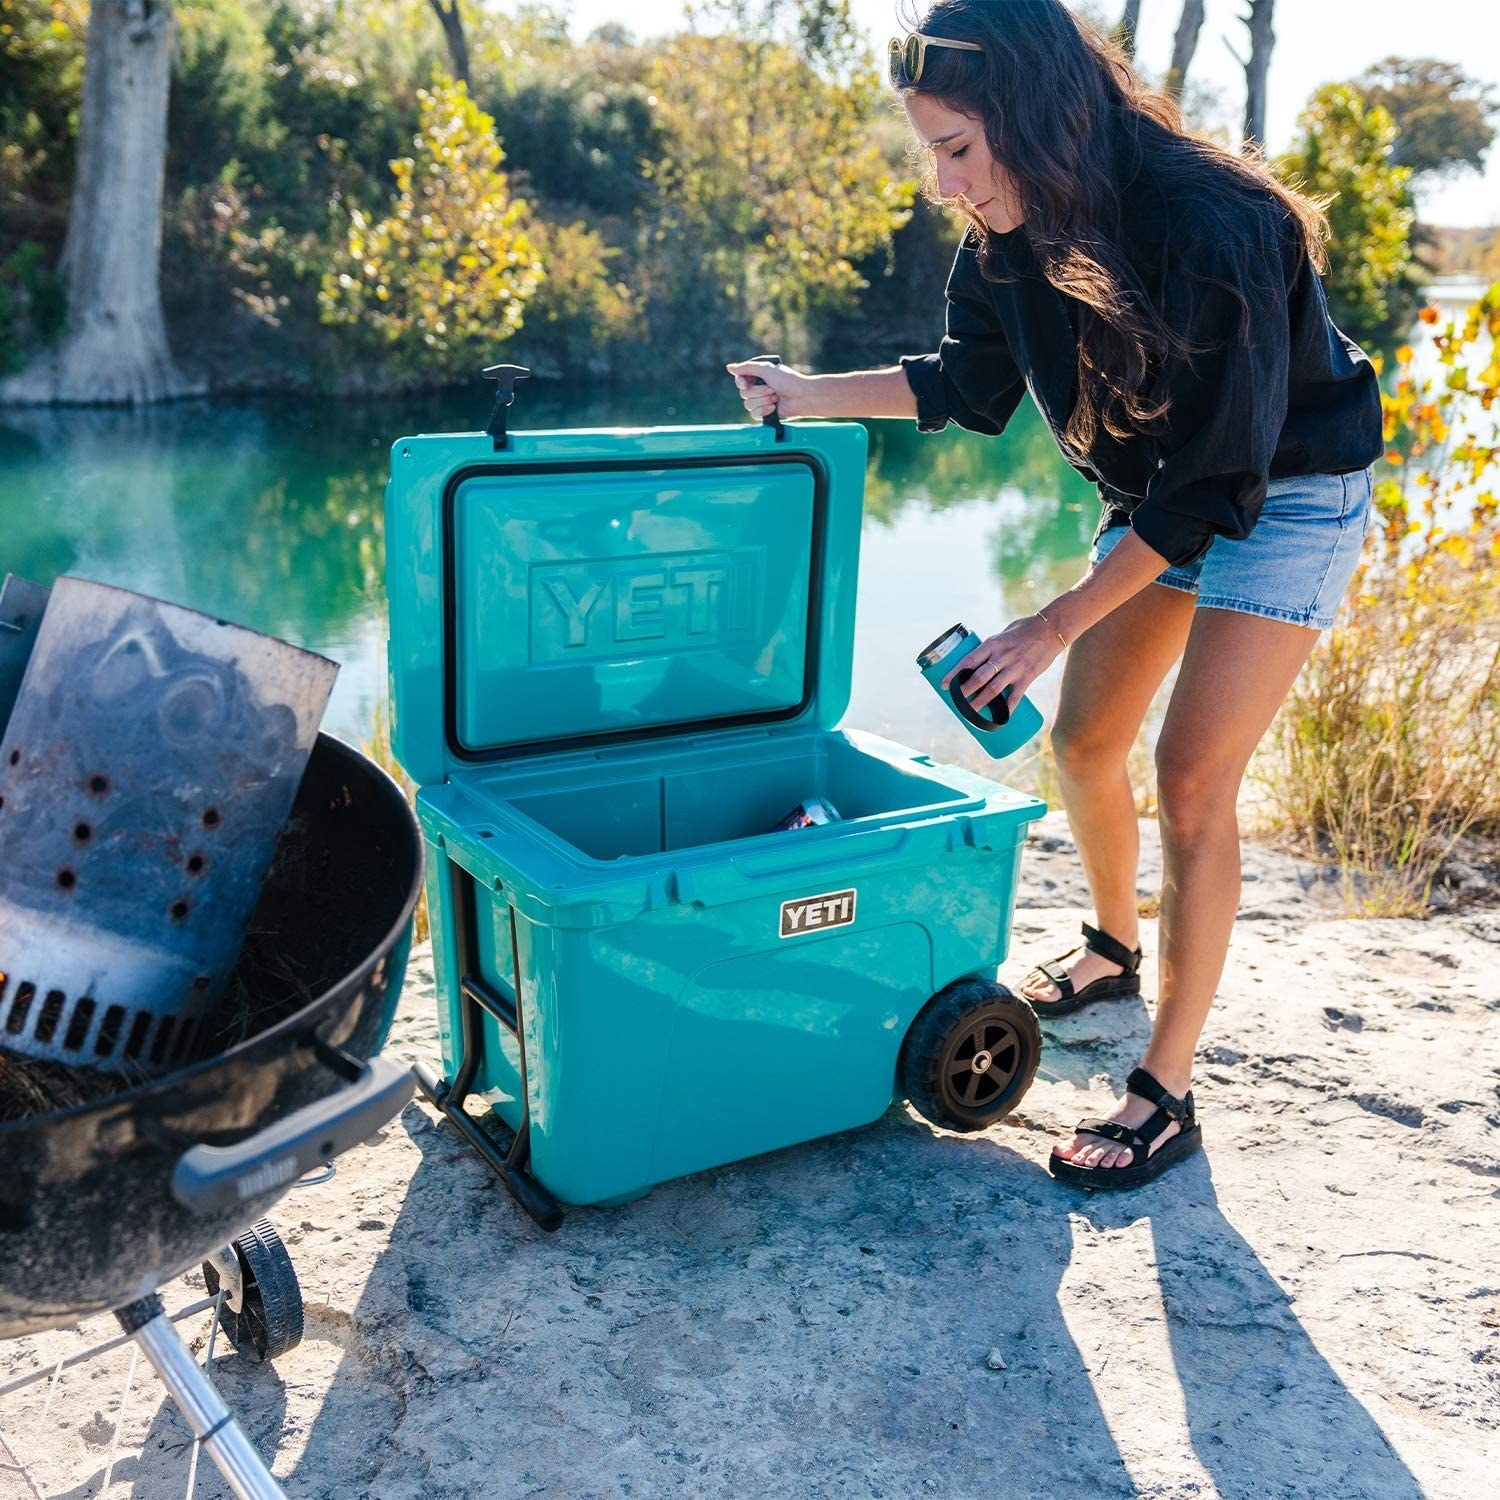 A model takes a drink out of the blue cooler